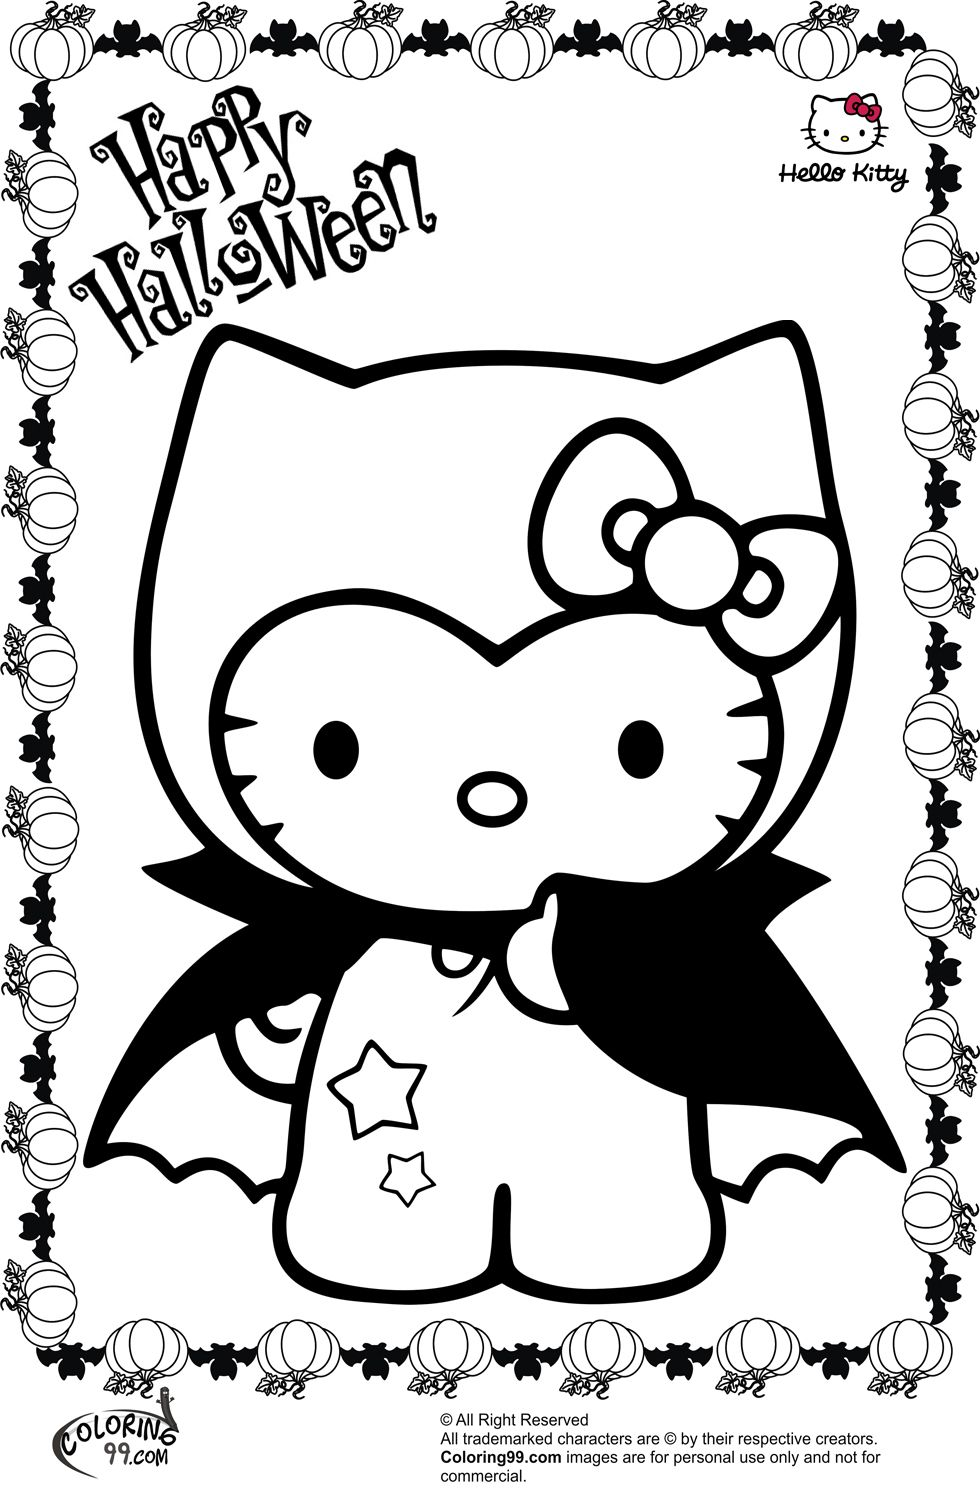 These spooky free halloween coloring pages feature a